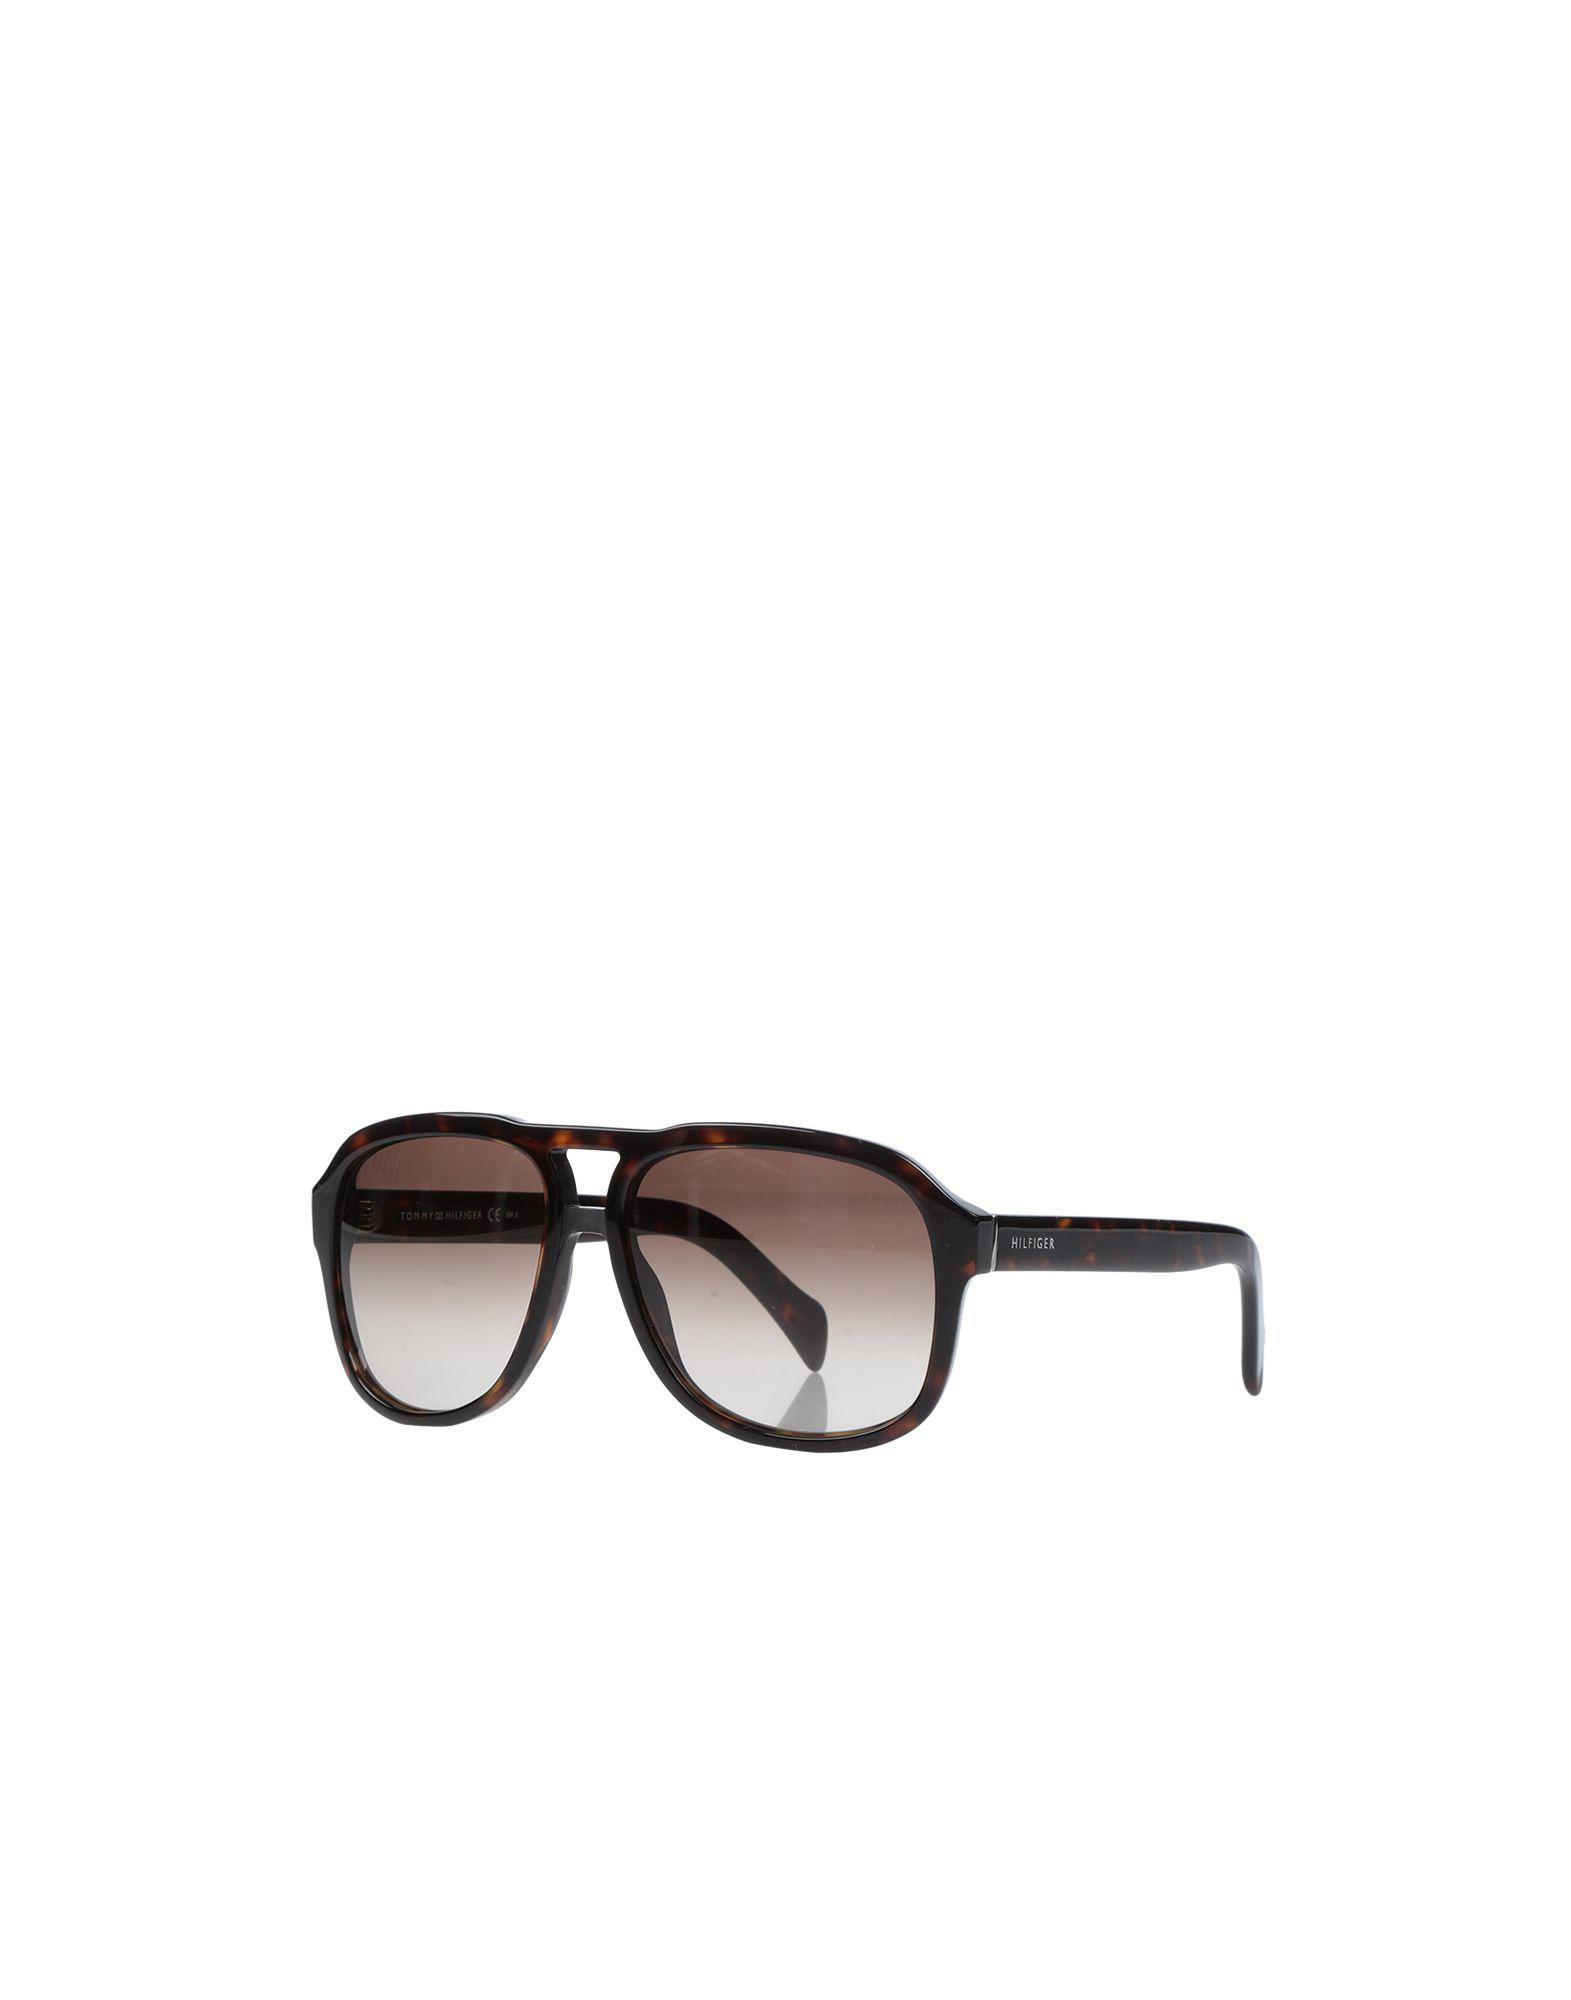 1420751e9211 Tommy Hilfiger Sunglasses in Brown for Men - Lyst